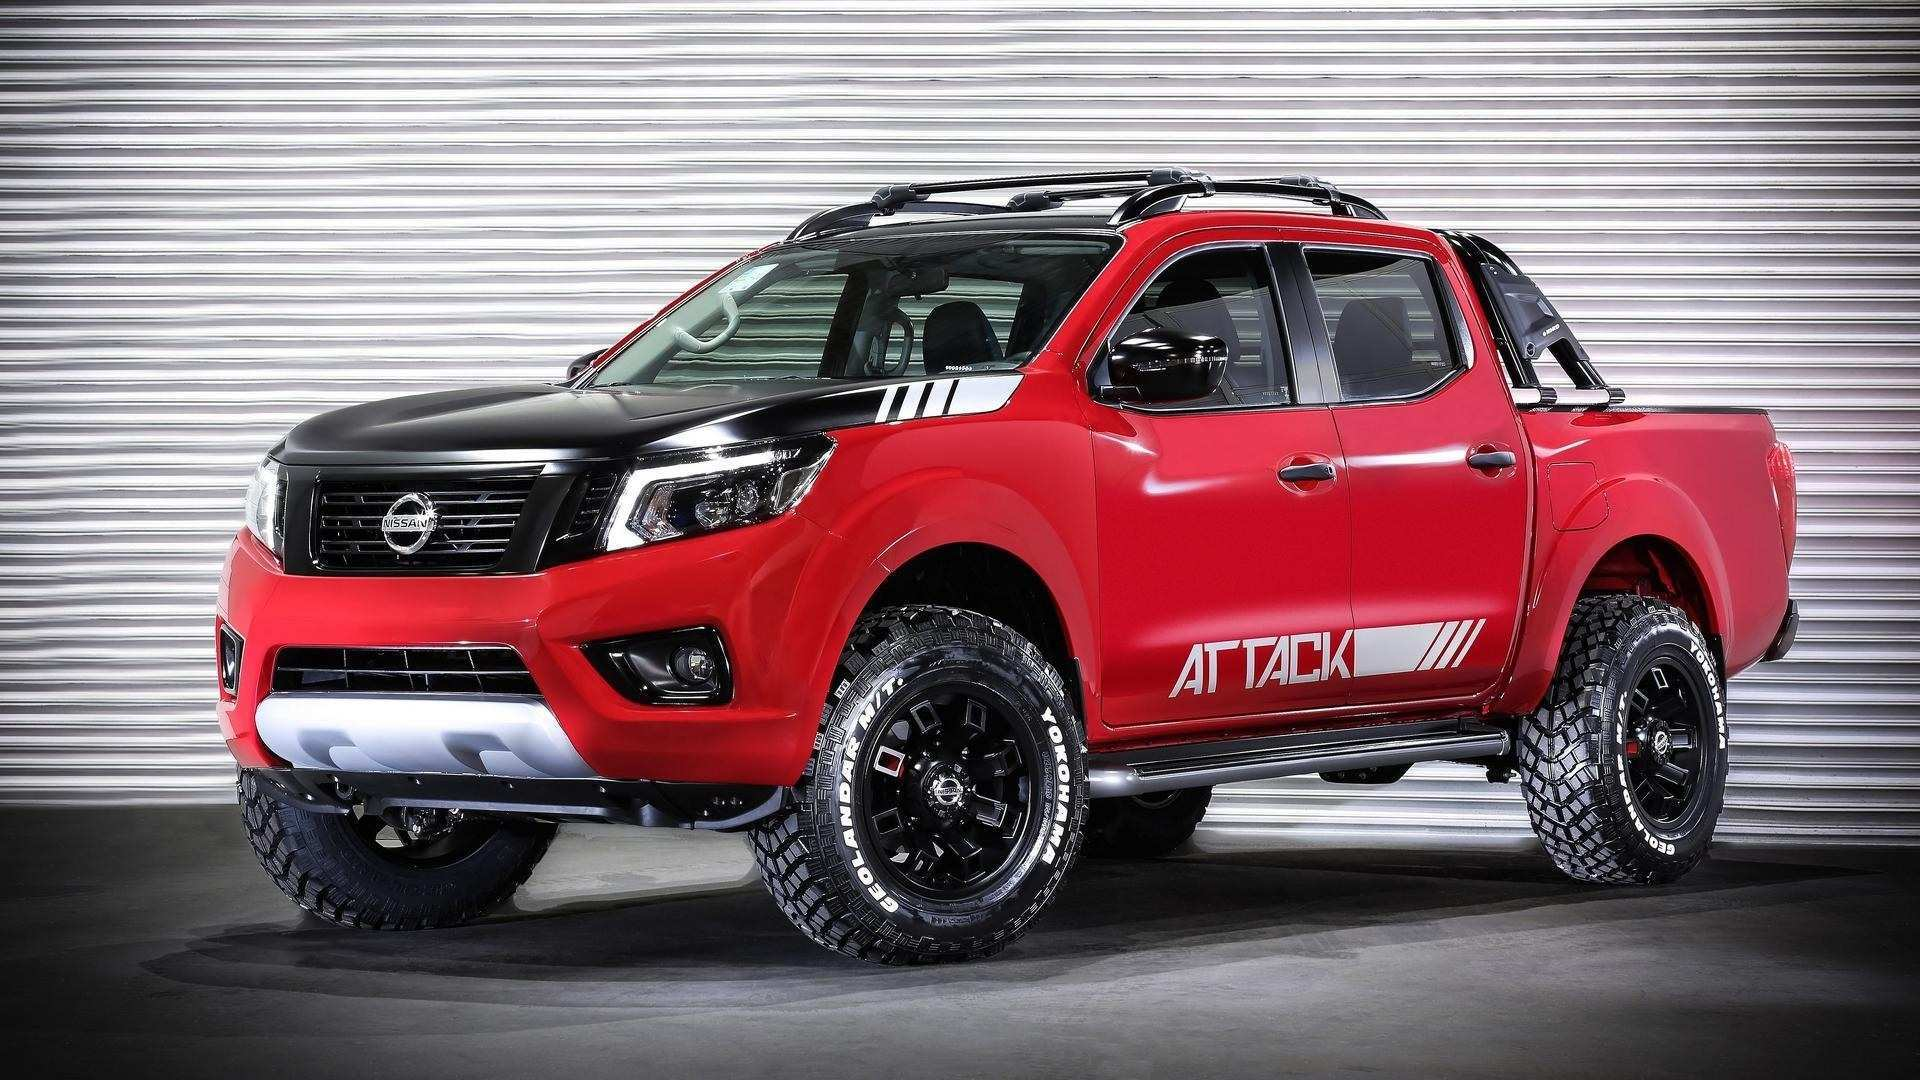 43 Gallery of Best When Do Nissan 2019 Come Out Review Specs And Release Date Wallpaper with Best When Do Nissan 2019 Come Out Review Specs And Release Date